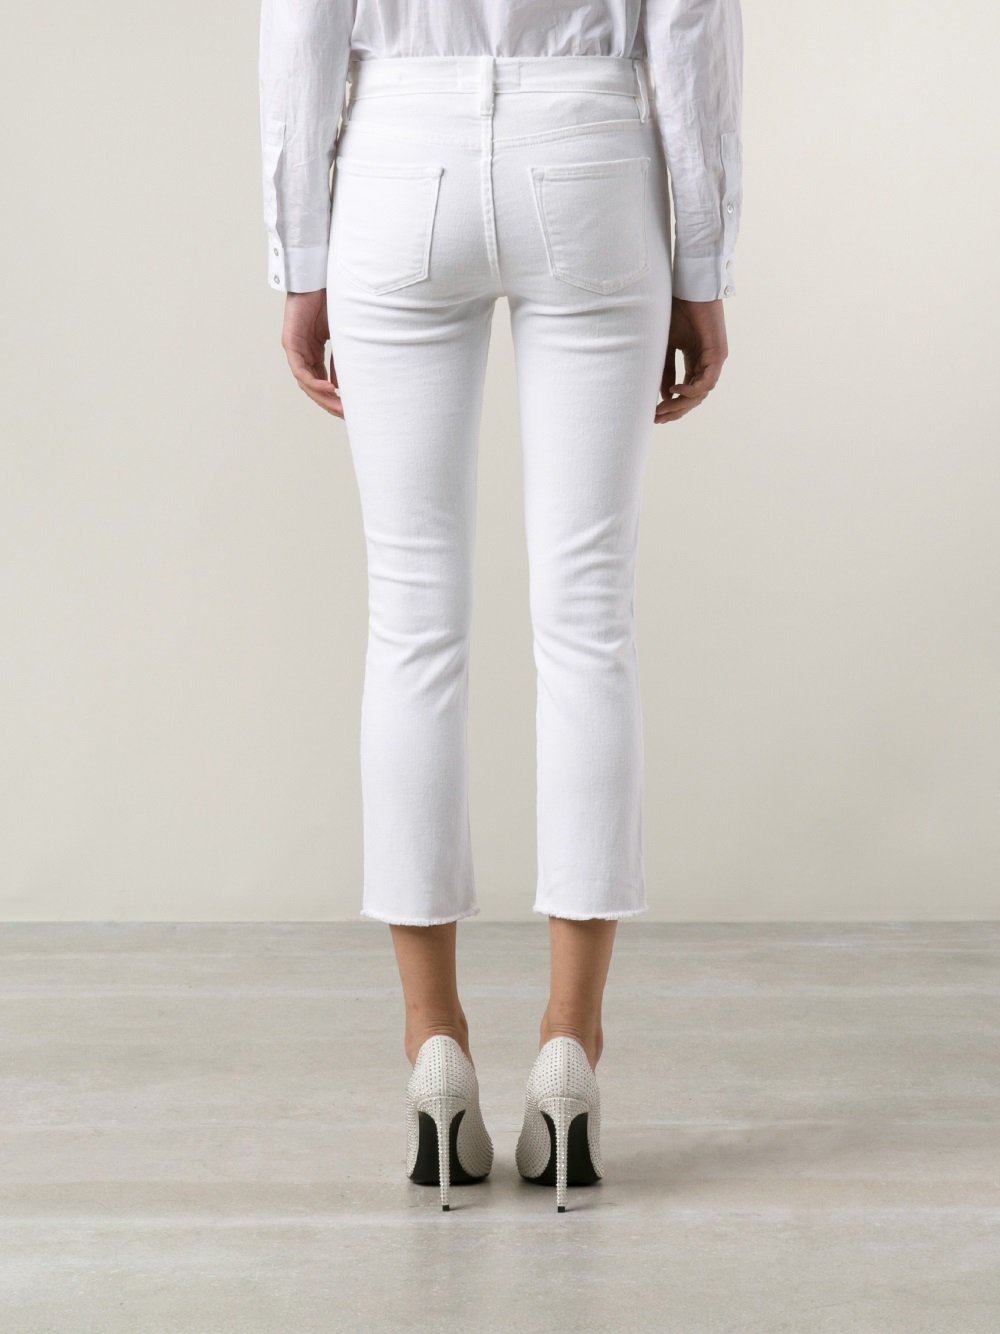 Frame Le High Skinny Jeans in White - Lyst